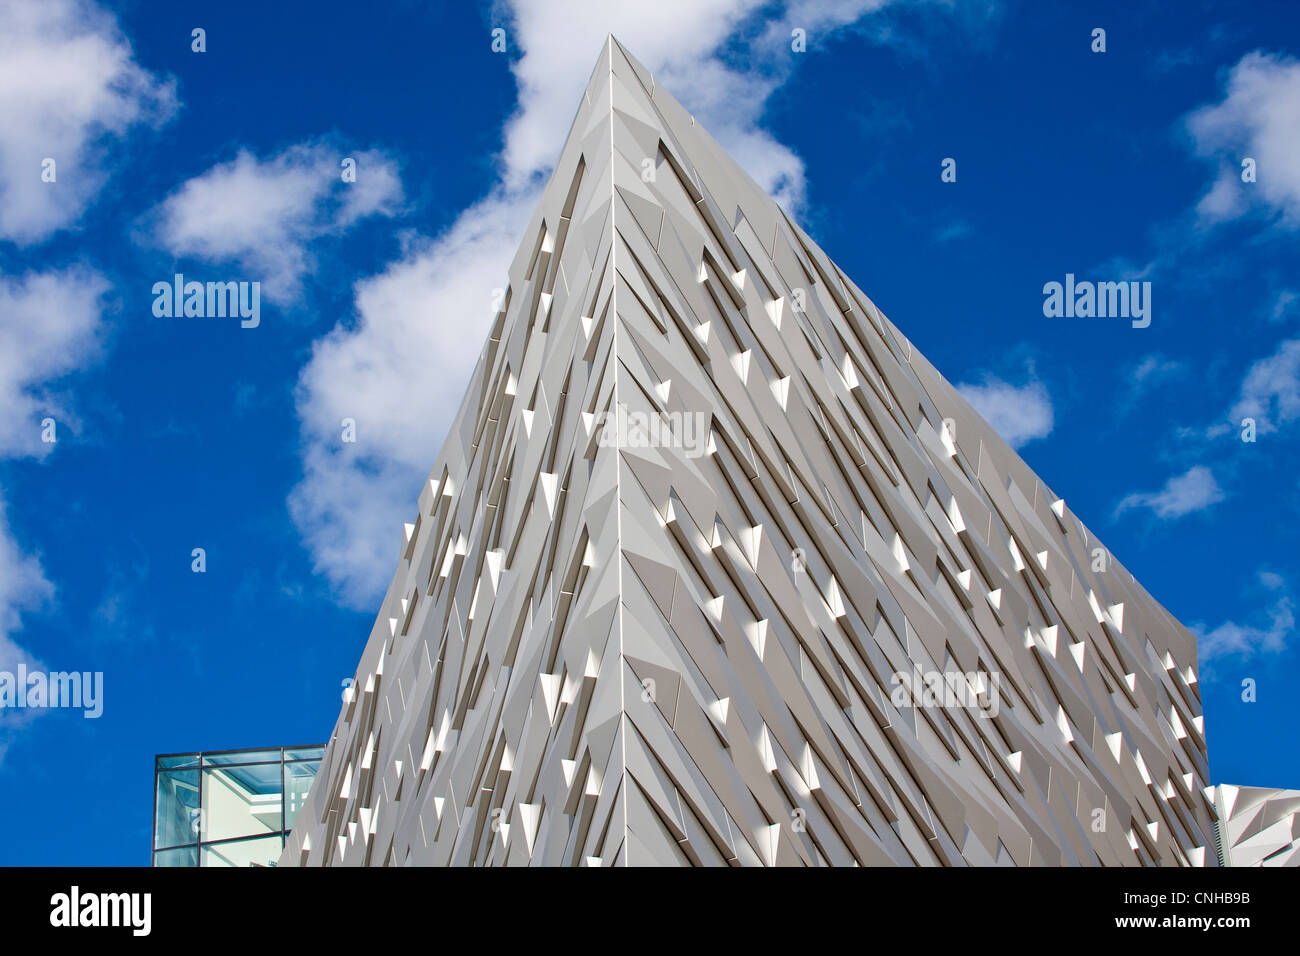 Detail of the Titanic Museum in Belfast Northern Ireland - Stock Image